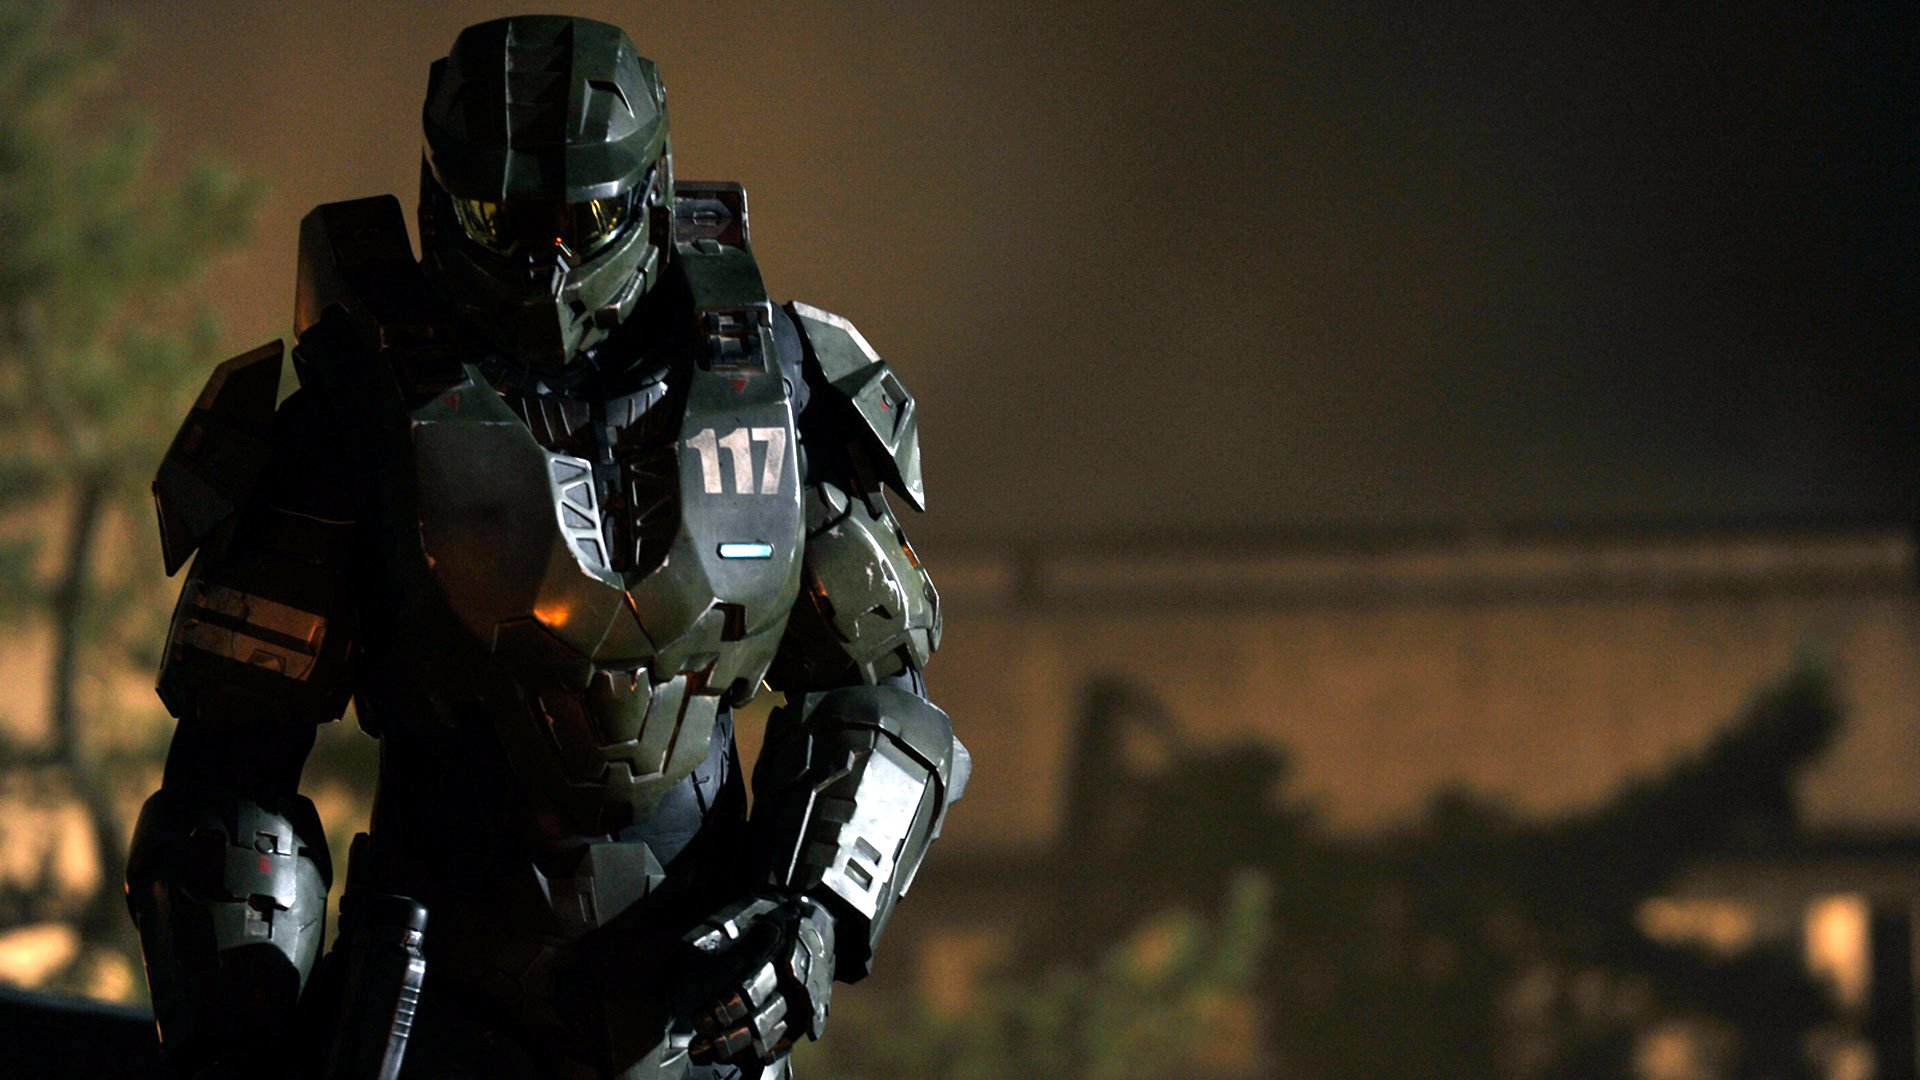 Halo Master Chief Hd Wallpaper in Games Category Pictures To